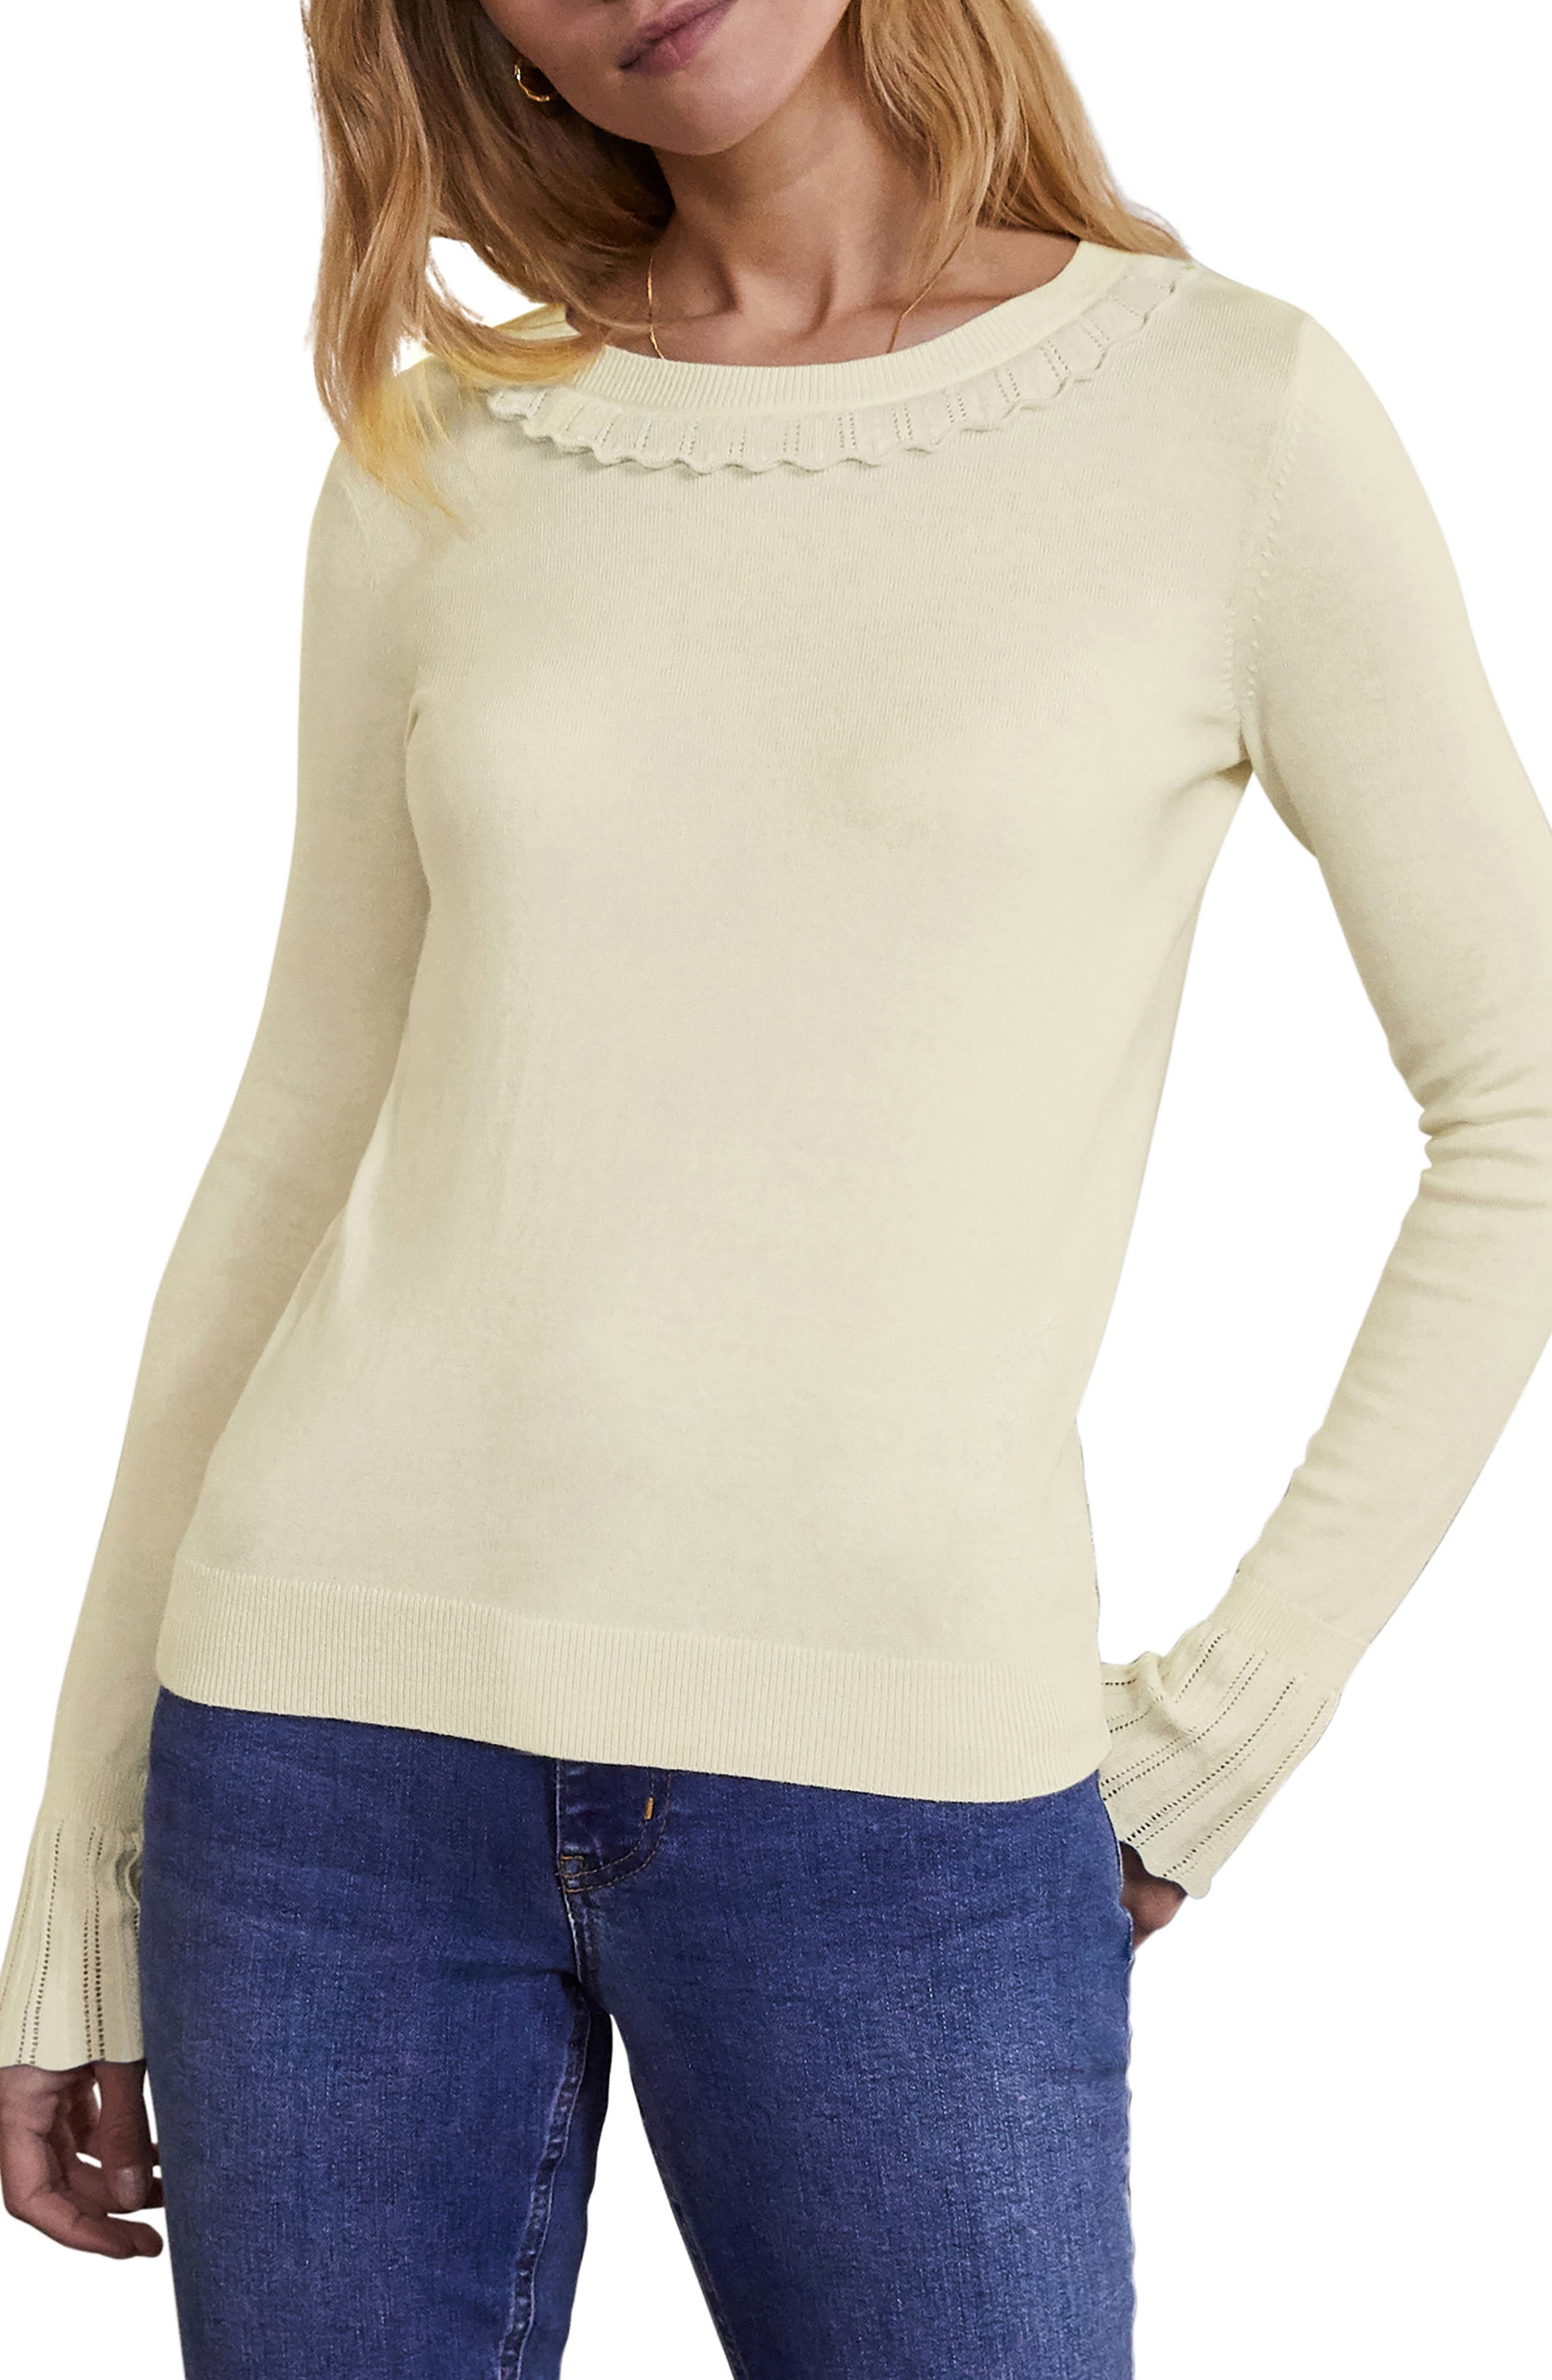 Boden Aimee Cotton & Wool Flare Sleeve Sweater